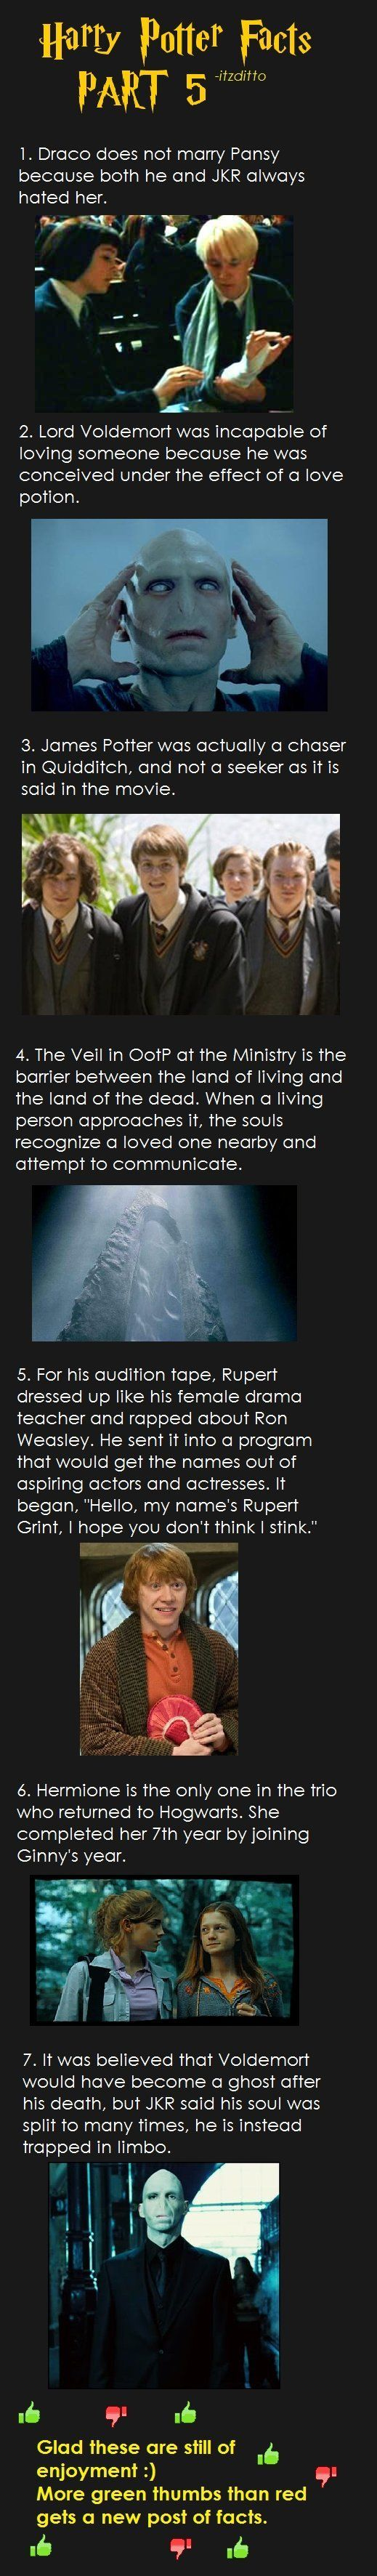 Harry Potter facts - Part 5 :'):